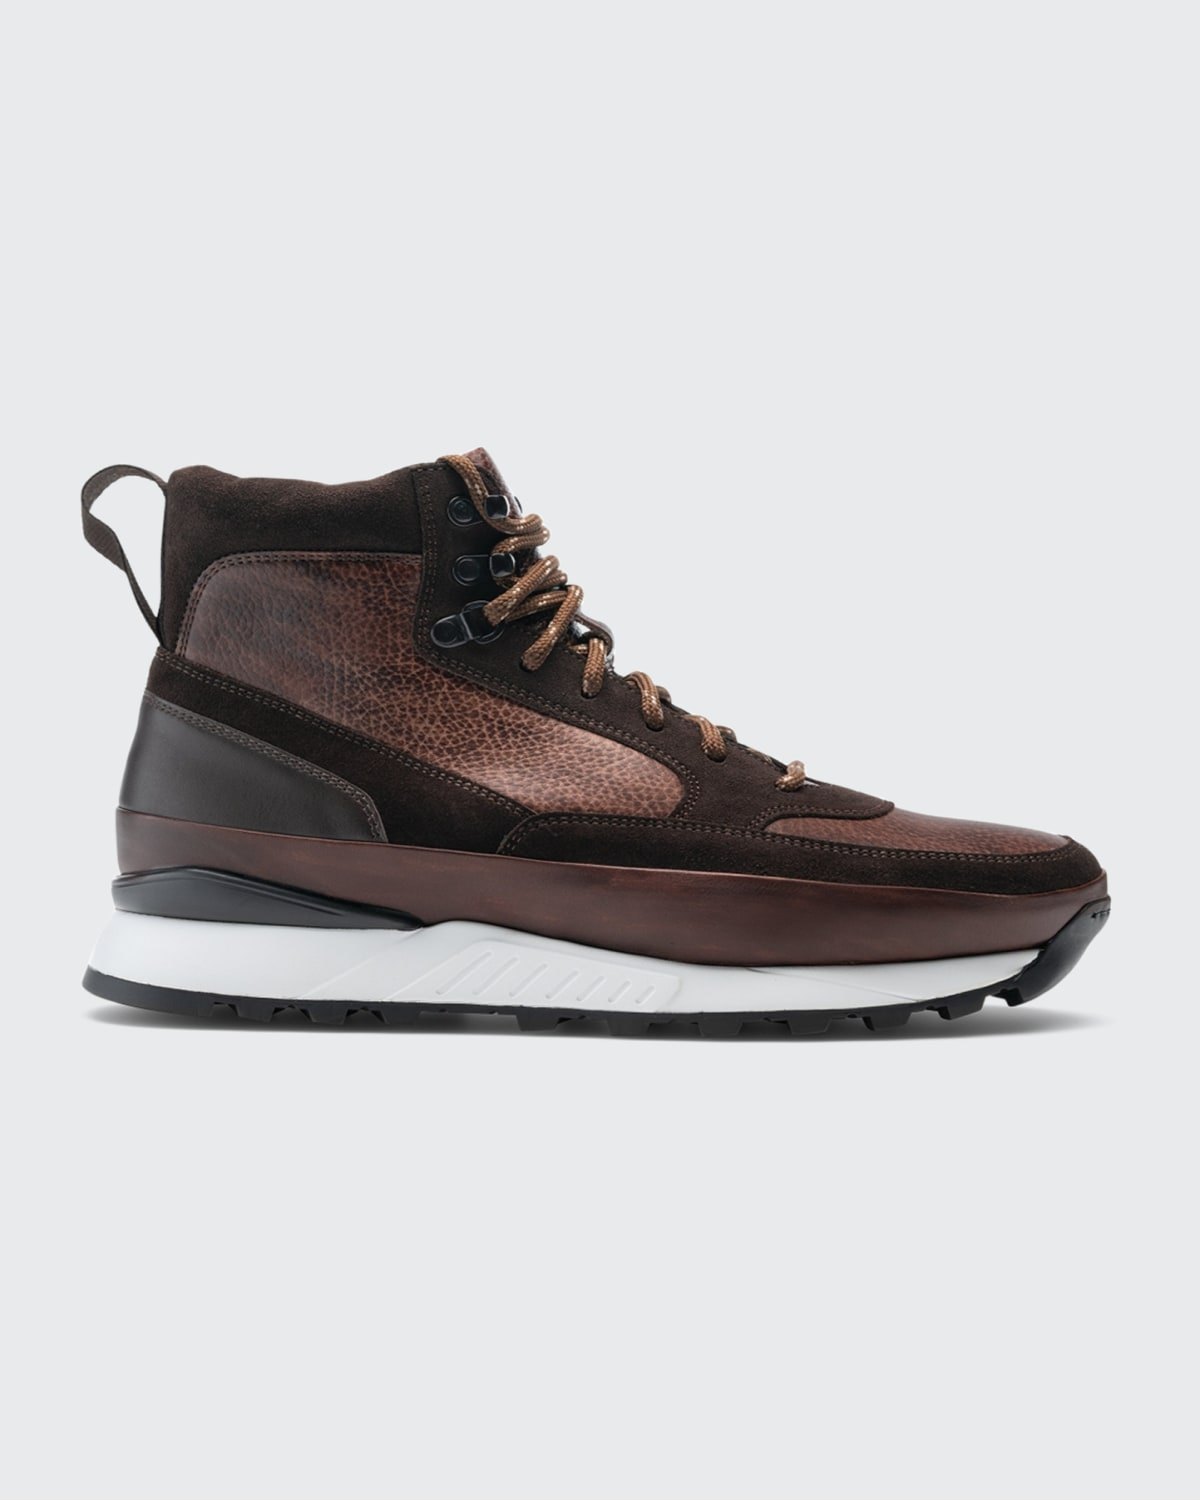 Men's Bodhi Leather & Suede Sneaker Boots